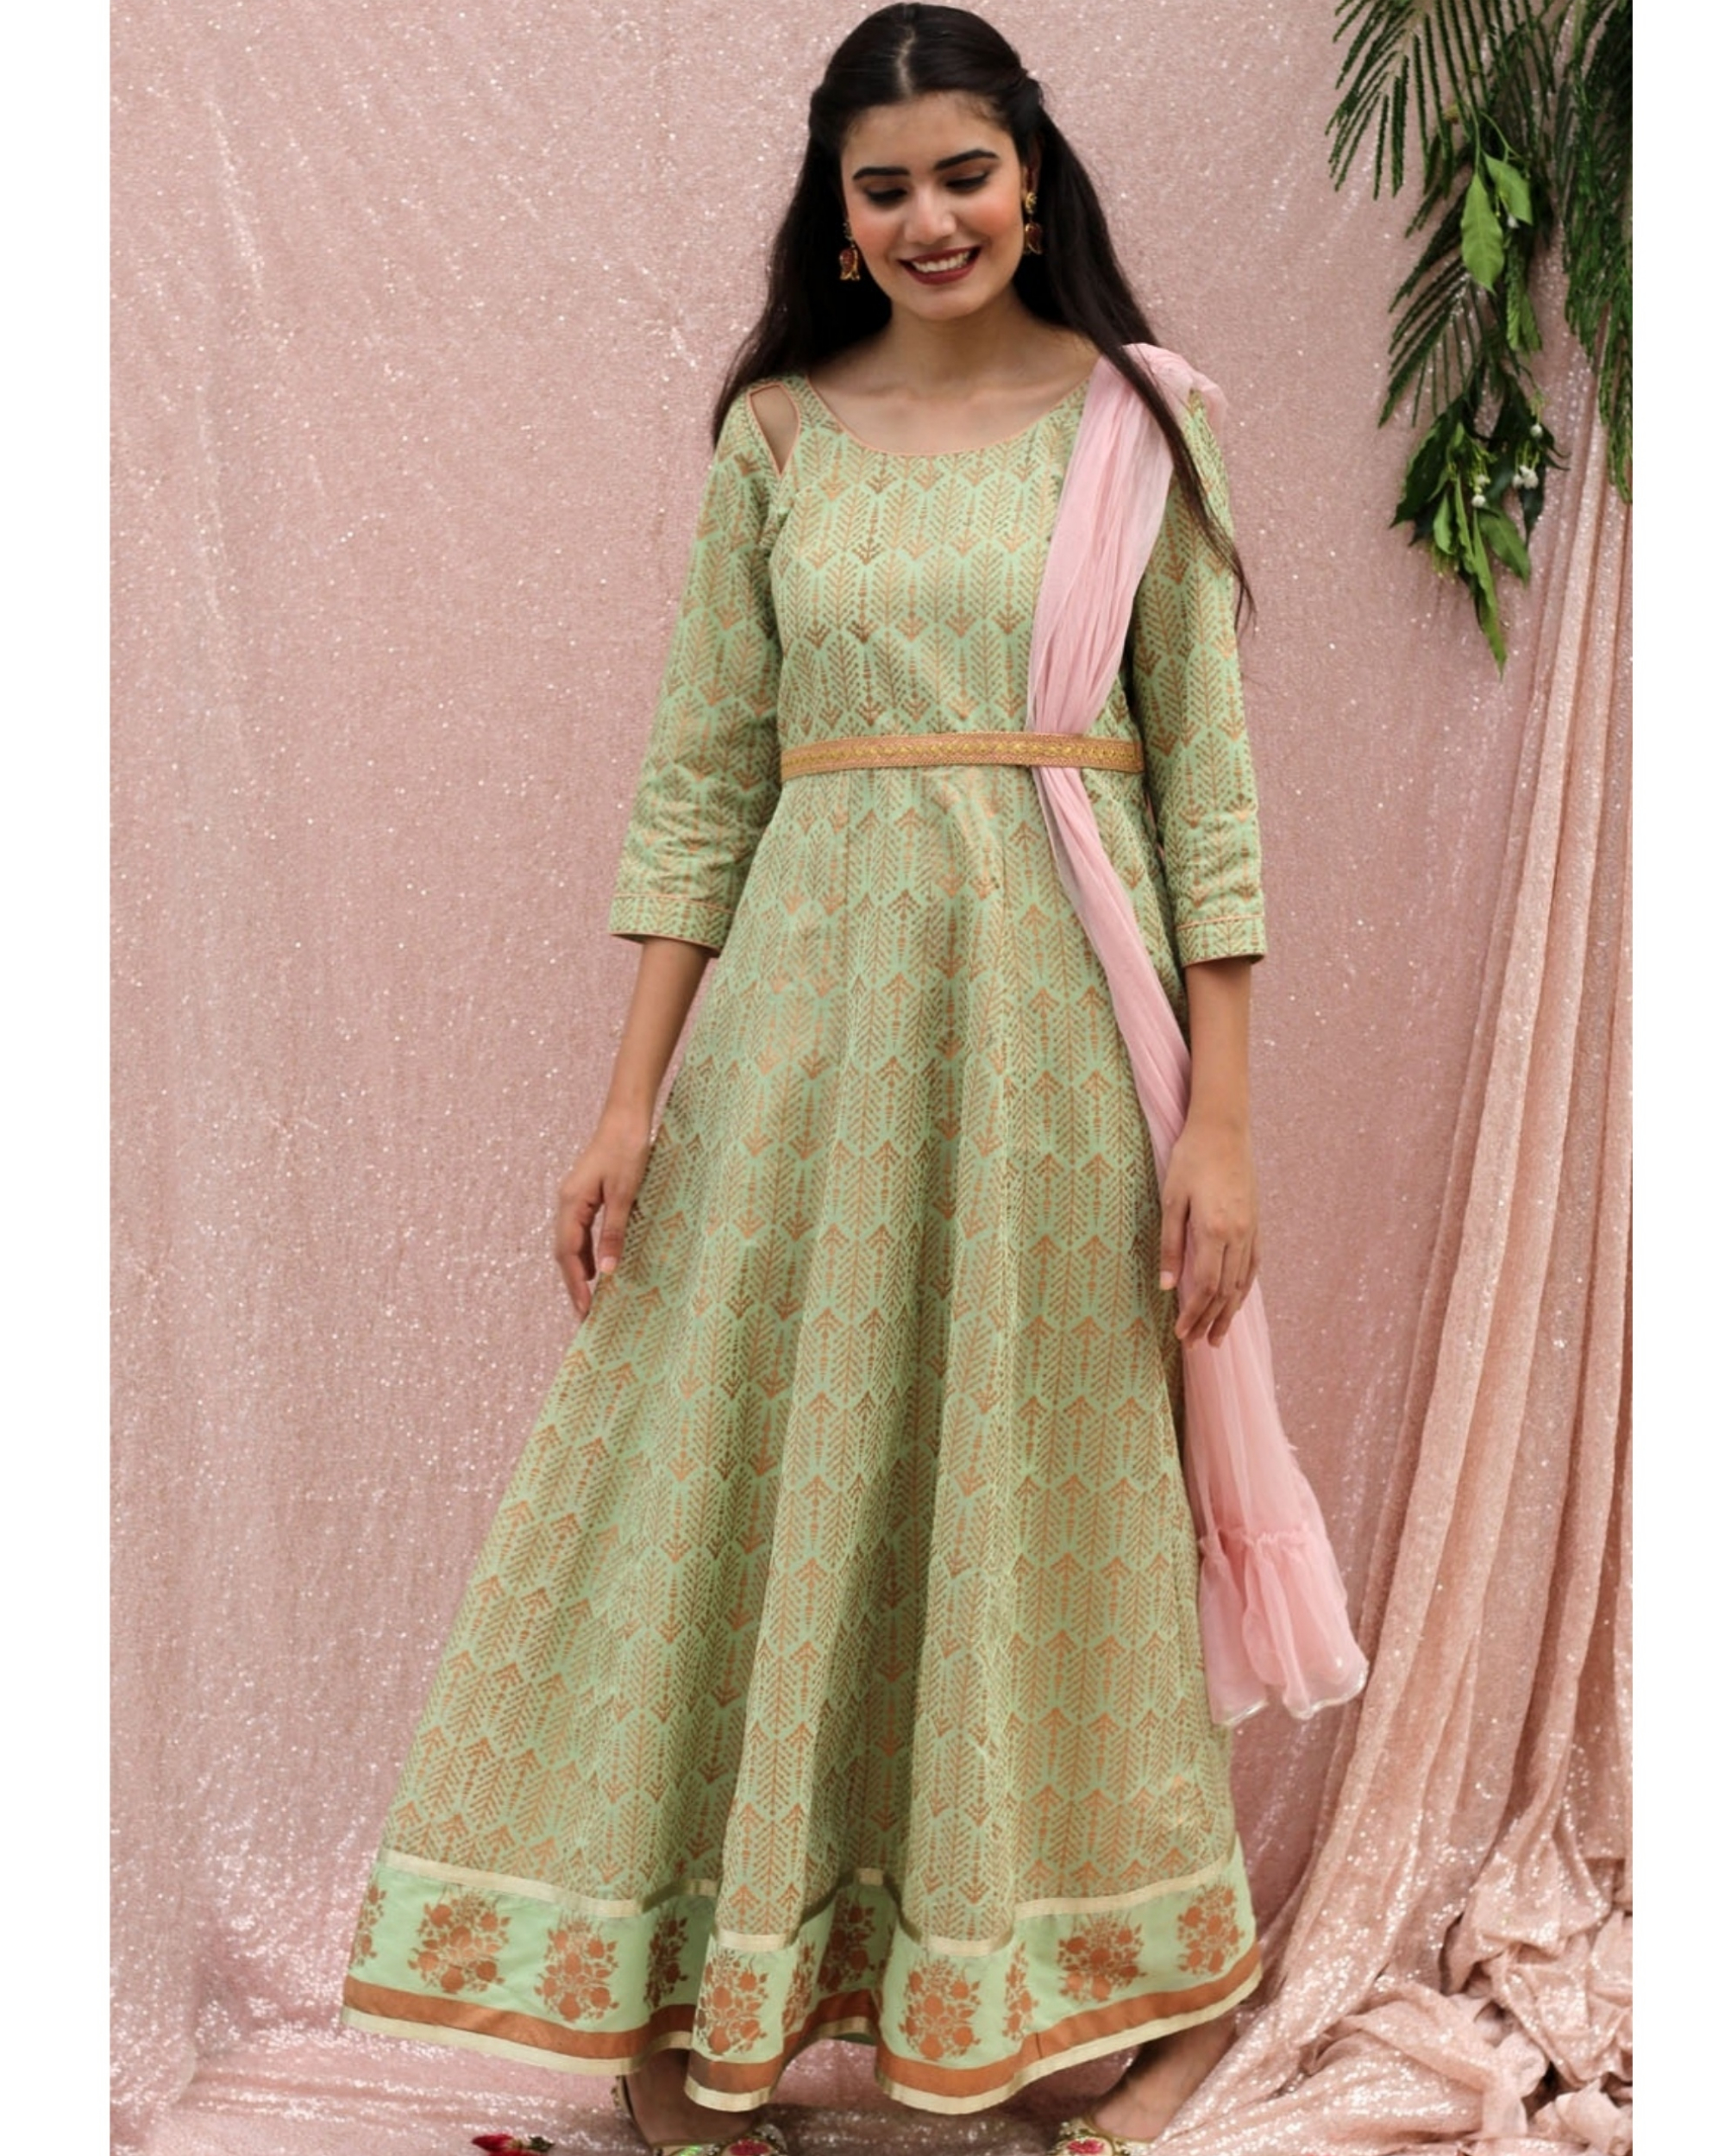 Sea green flared dress with dupatta - set of two